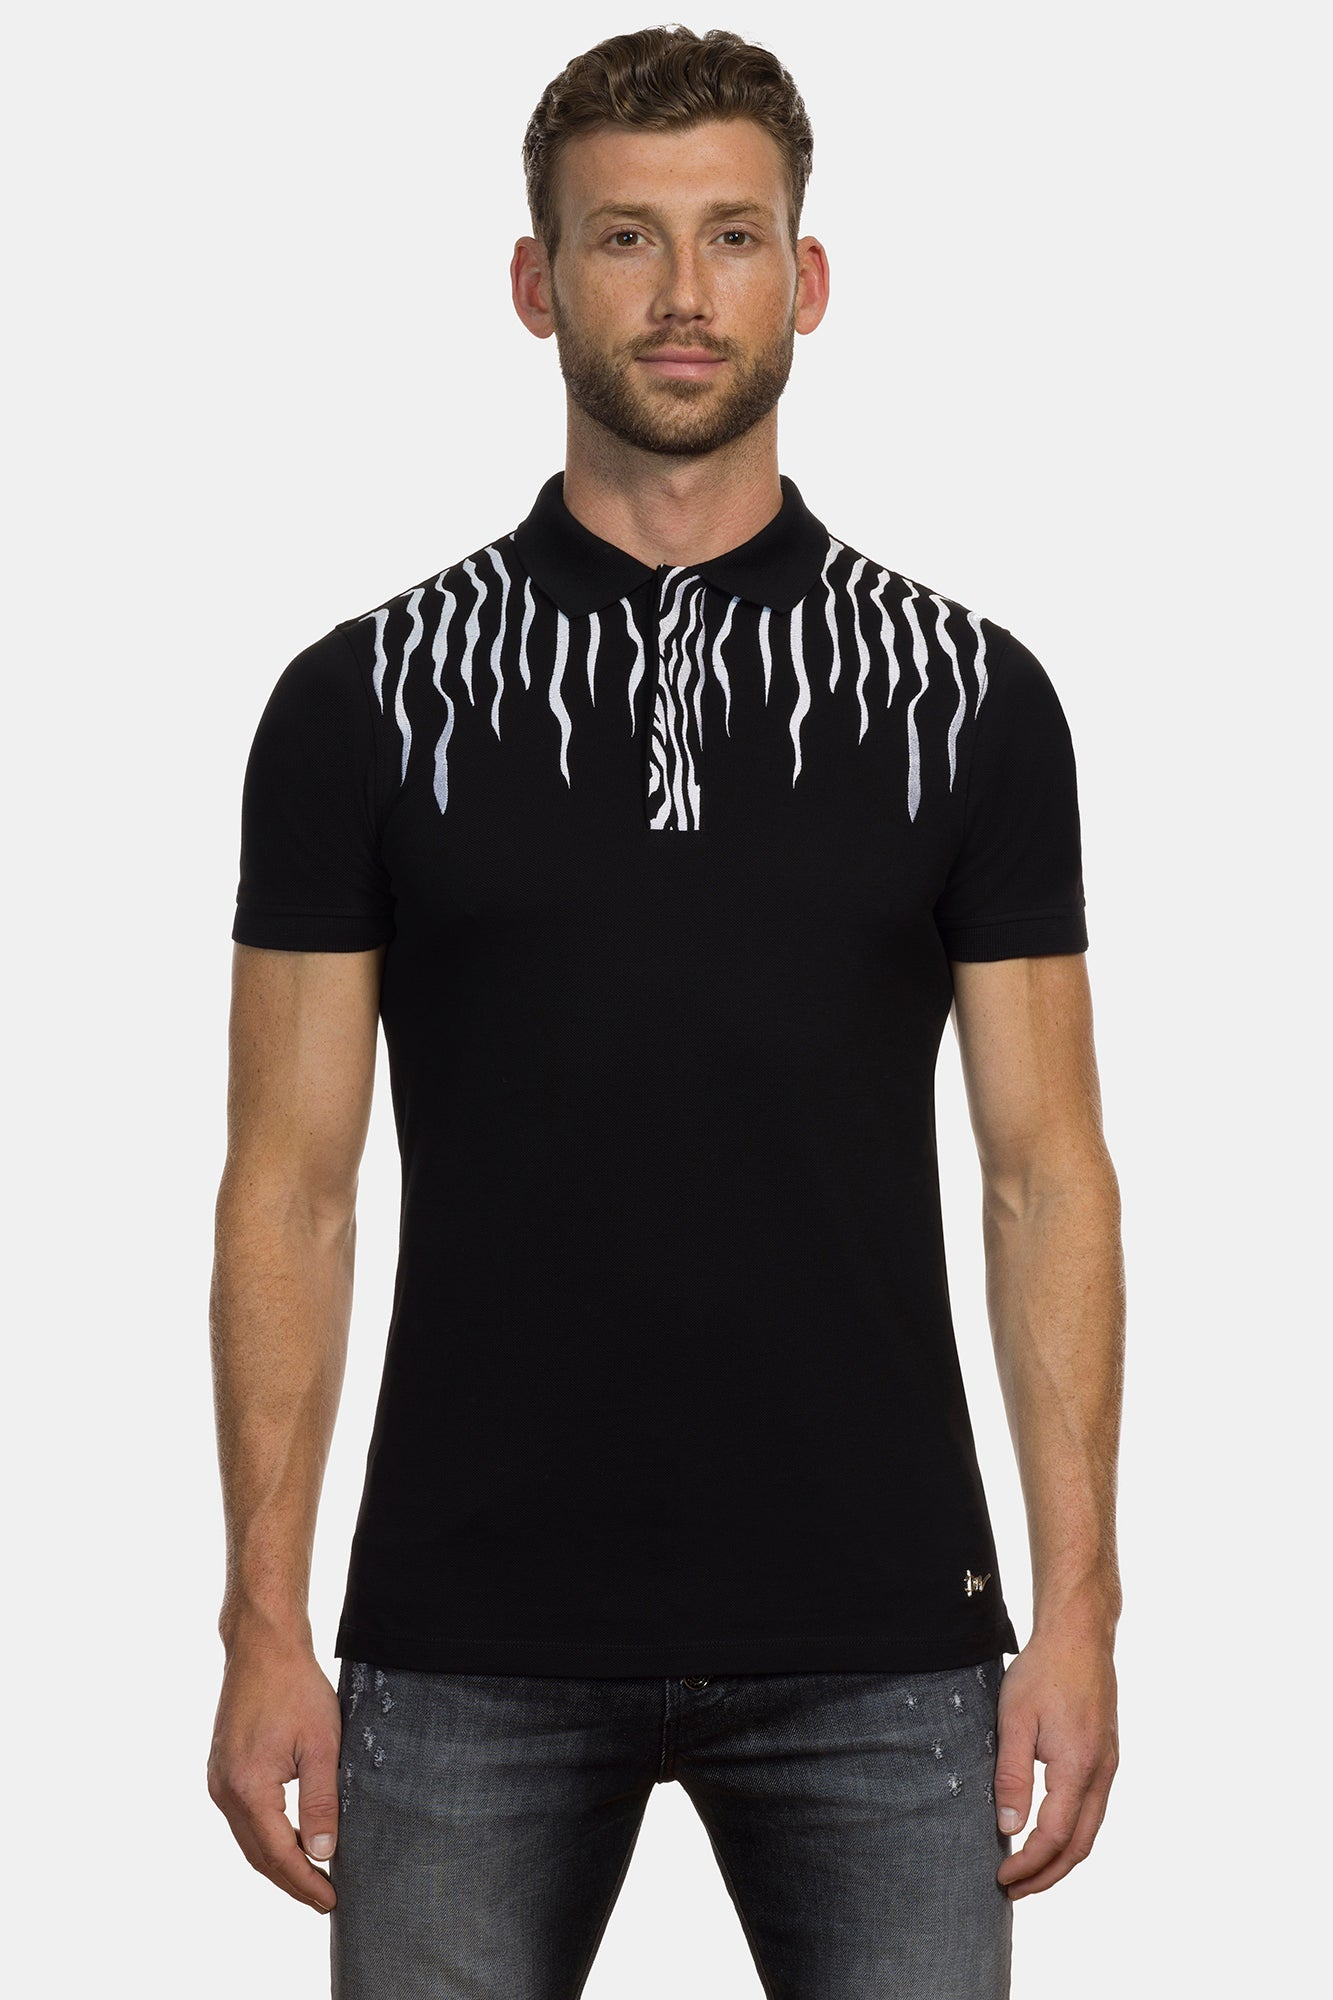 Black Equus Burchelli Zebra Polo - DIMORAL OFFICIAL